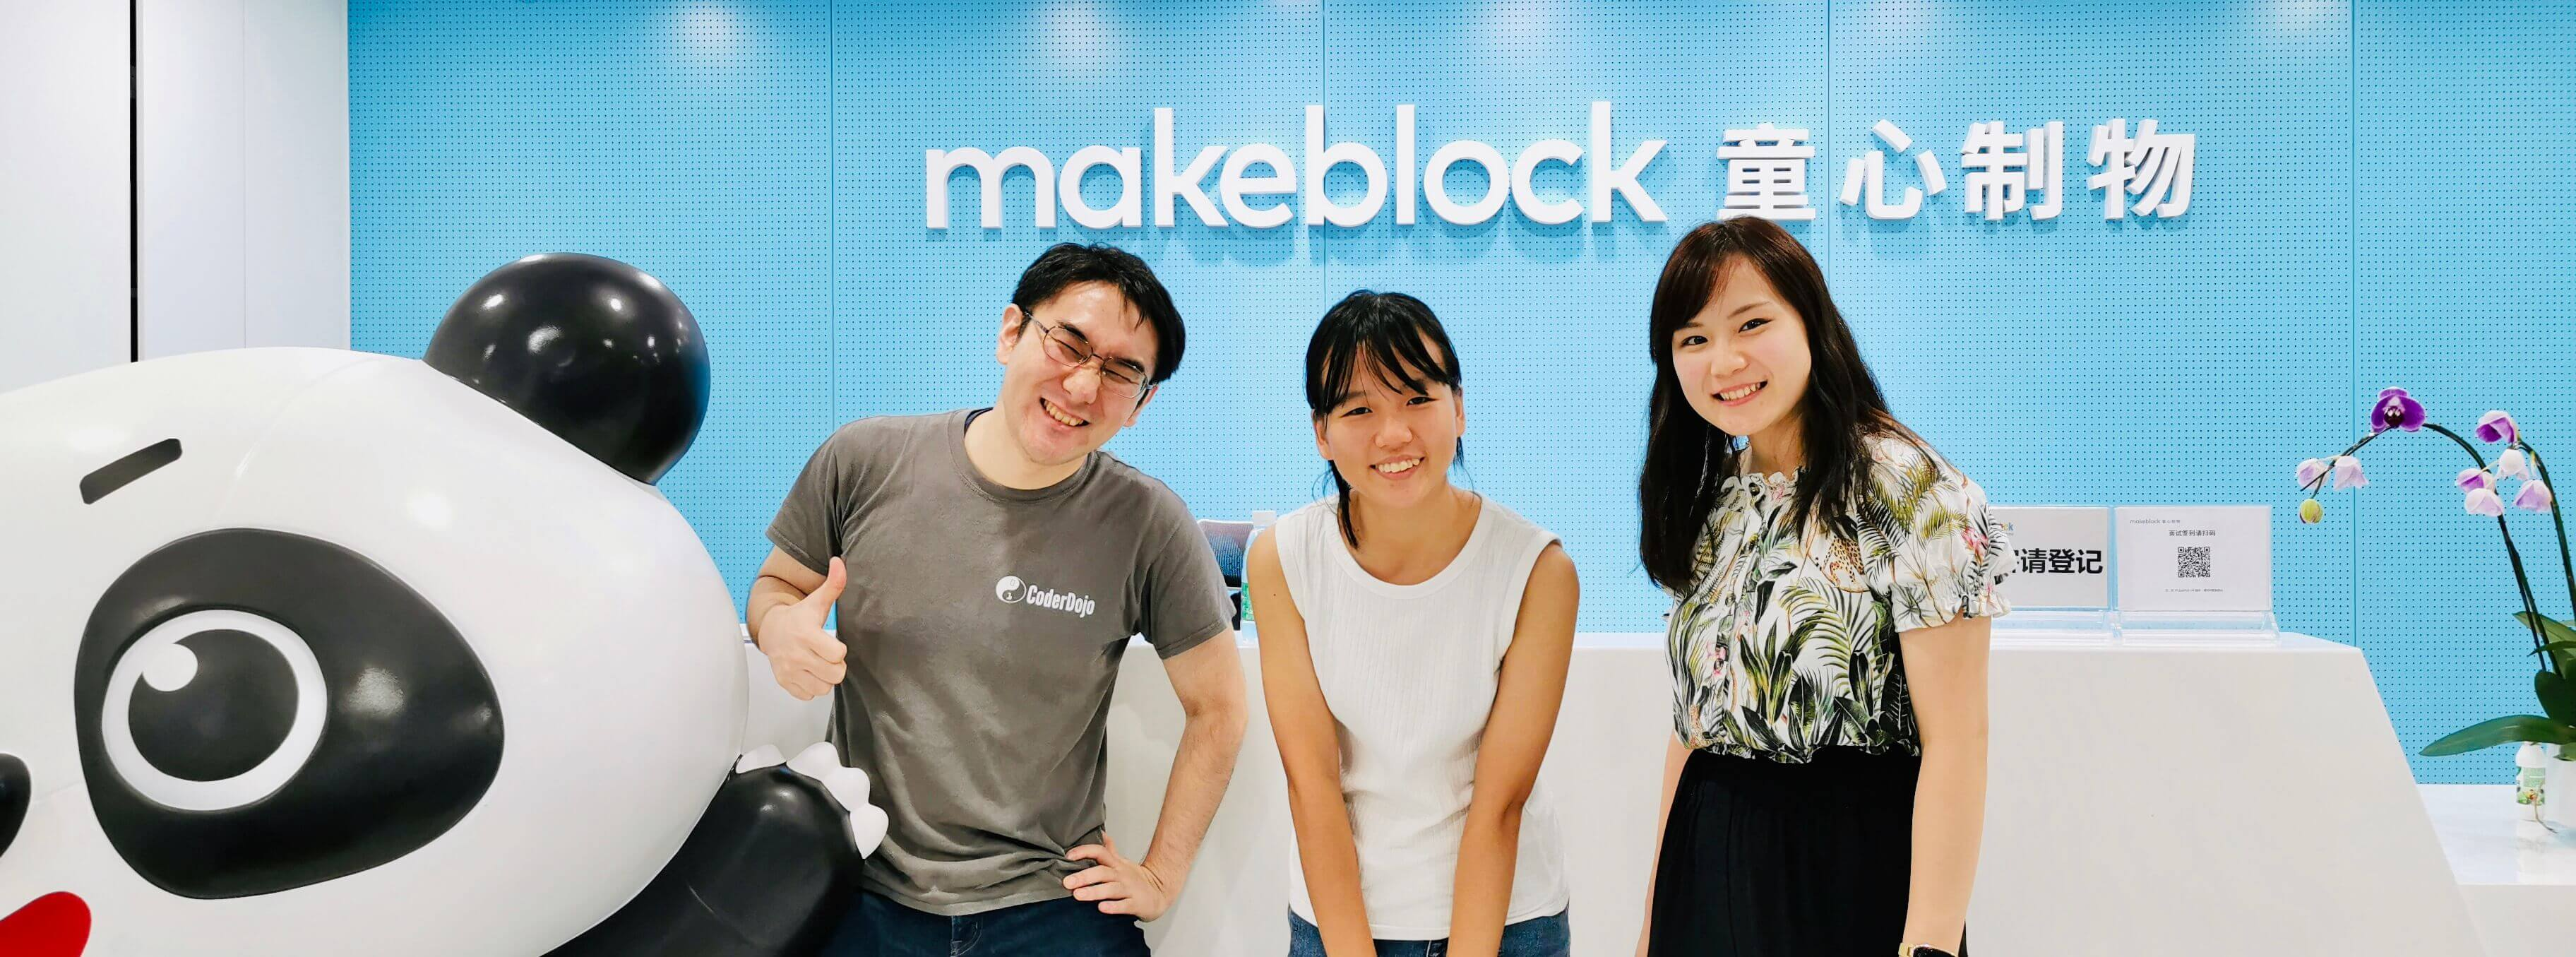 Cover photo of guests at Makeblock in Shenzen